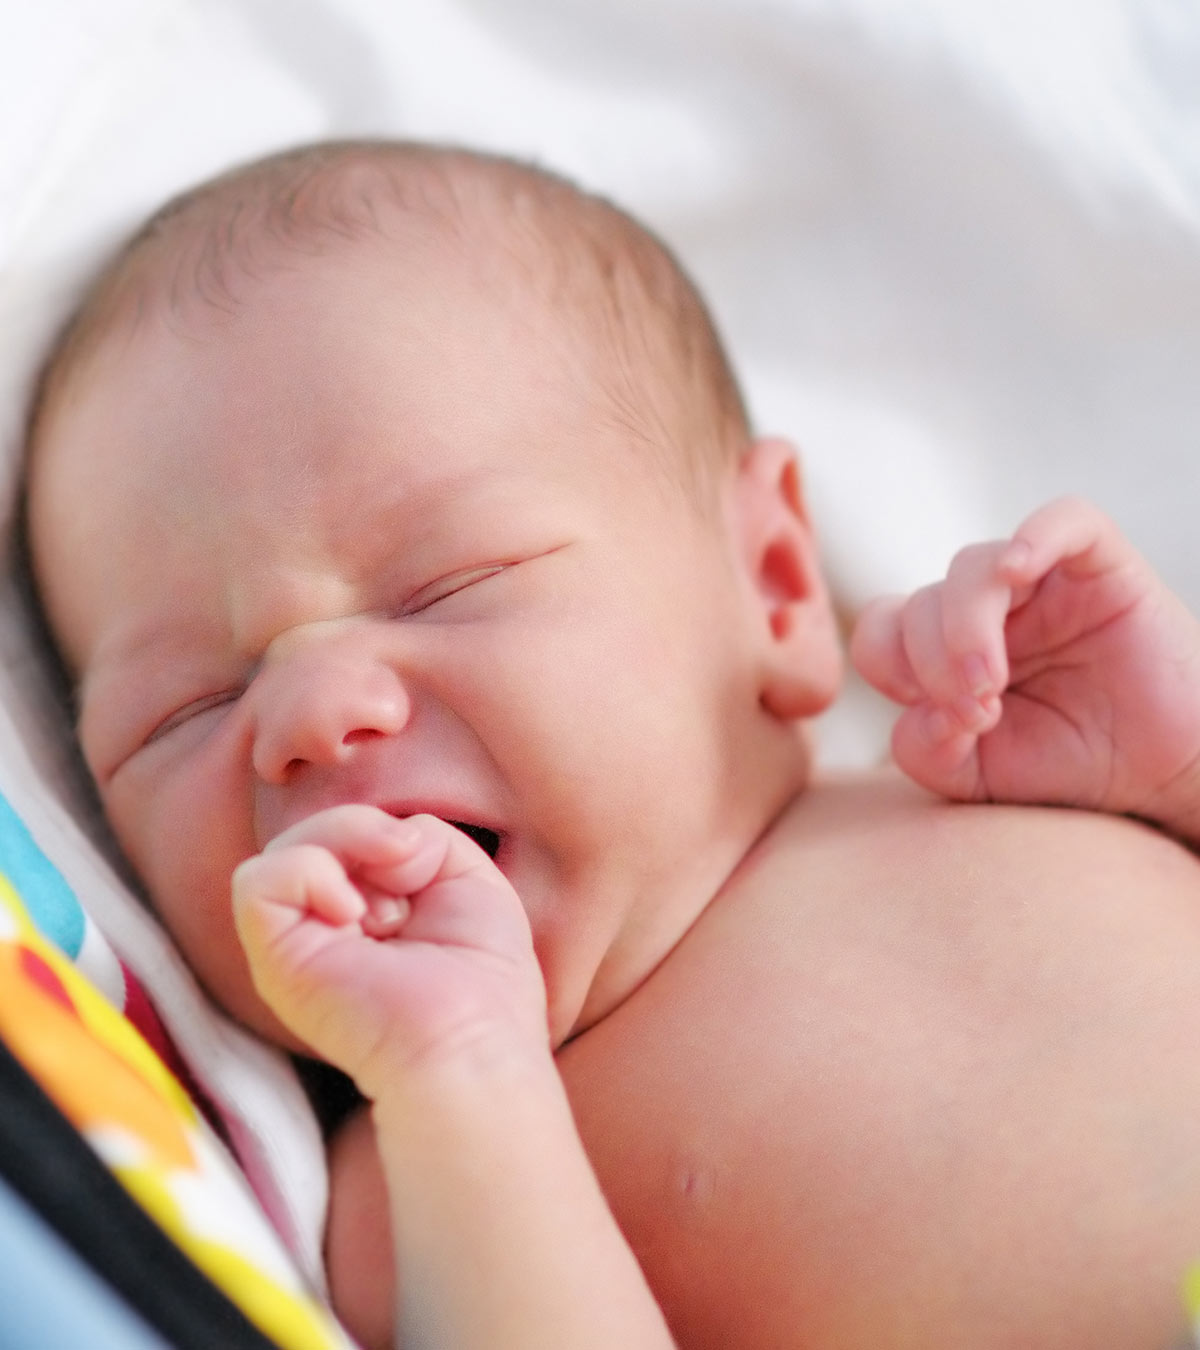 Why Does Your Baby Sigh During Sleep?